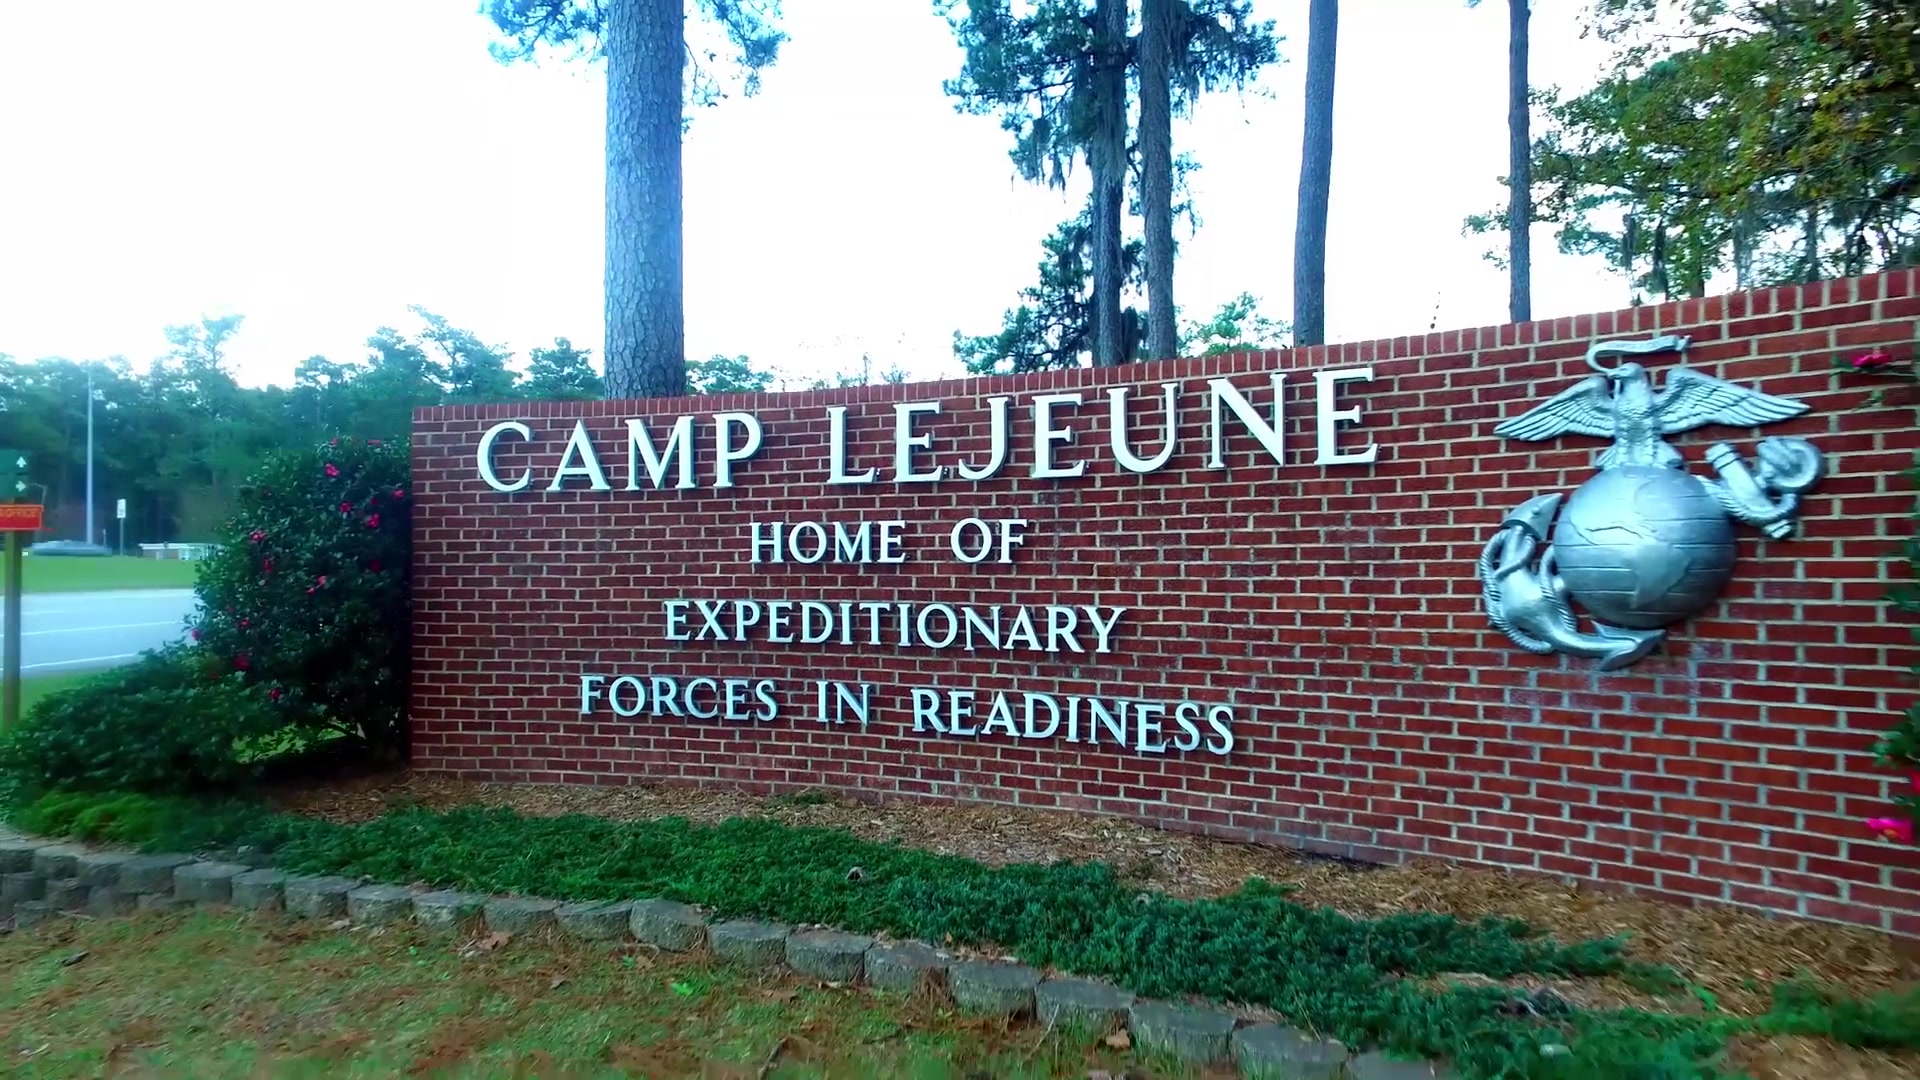 The following video showcases the many benefits and amenities available when living in base housing at Camp Lejeune and MCAS New River and urges residents to seek assistance from the PPV Partner or the Marine Corps to get any outstanding issues resolved.  (U.S. Marine Corps video by Cpl. Daphne Trevino,  Lance Cpl. Kaitlynn Hendricks, Lance Cpl. Nikki Morales and PVT Anthony Garcia, edited by Staff Sgt. Albert J. Carls MCIEAST COMMSTRAT/Released)